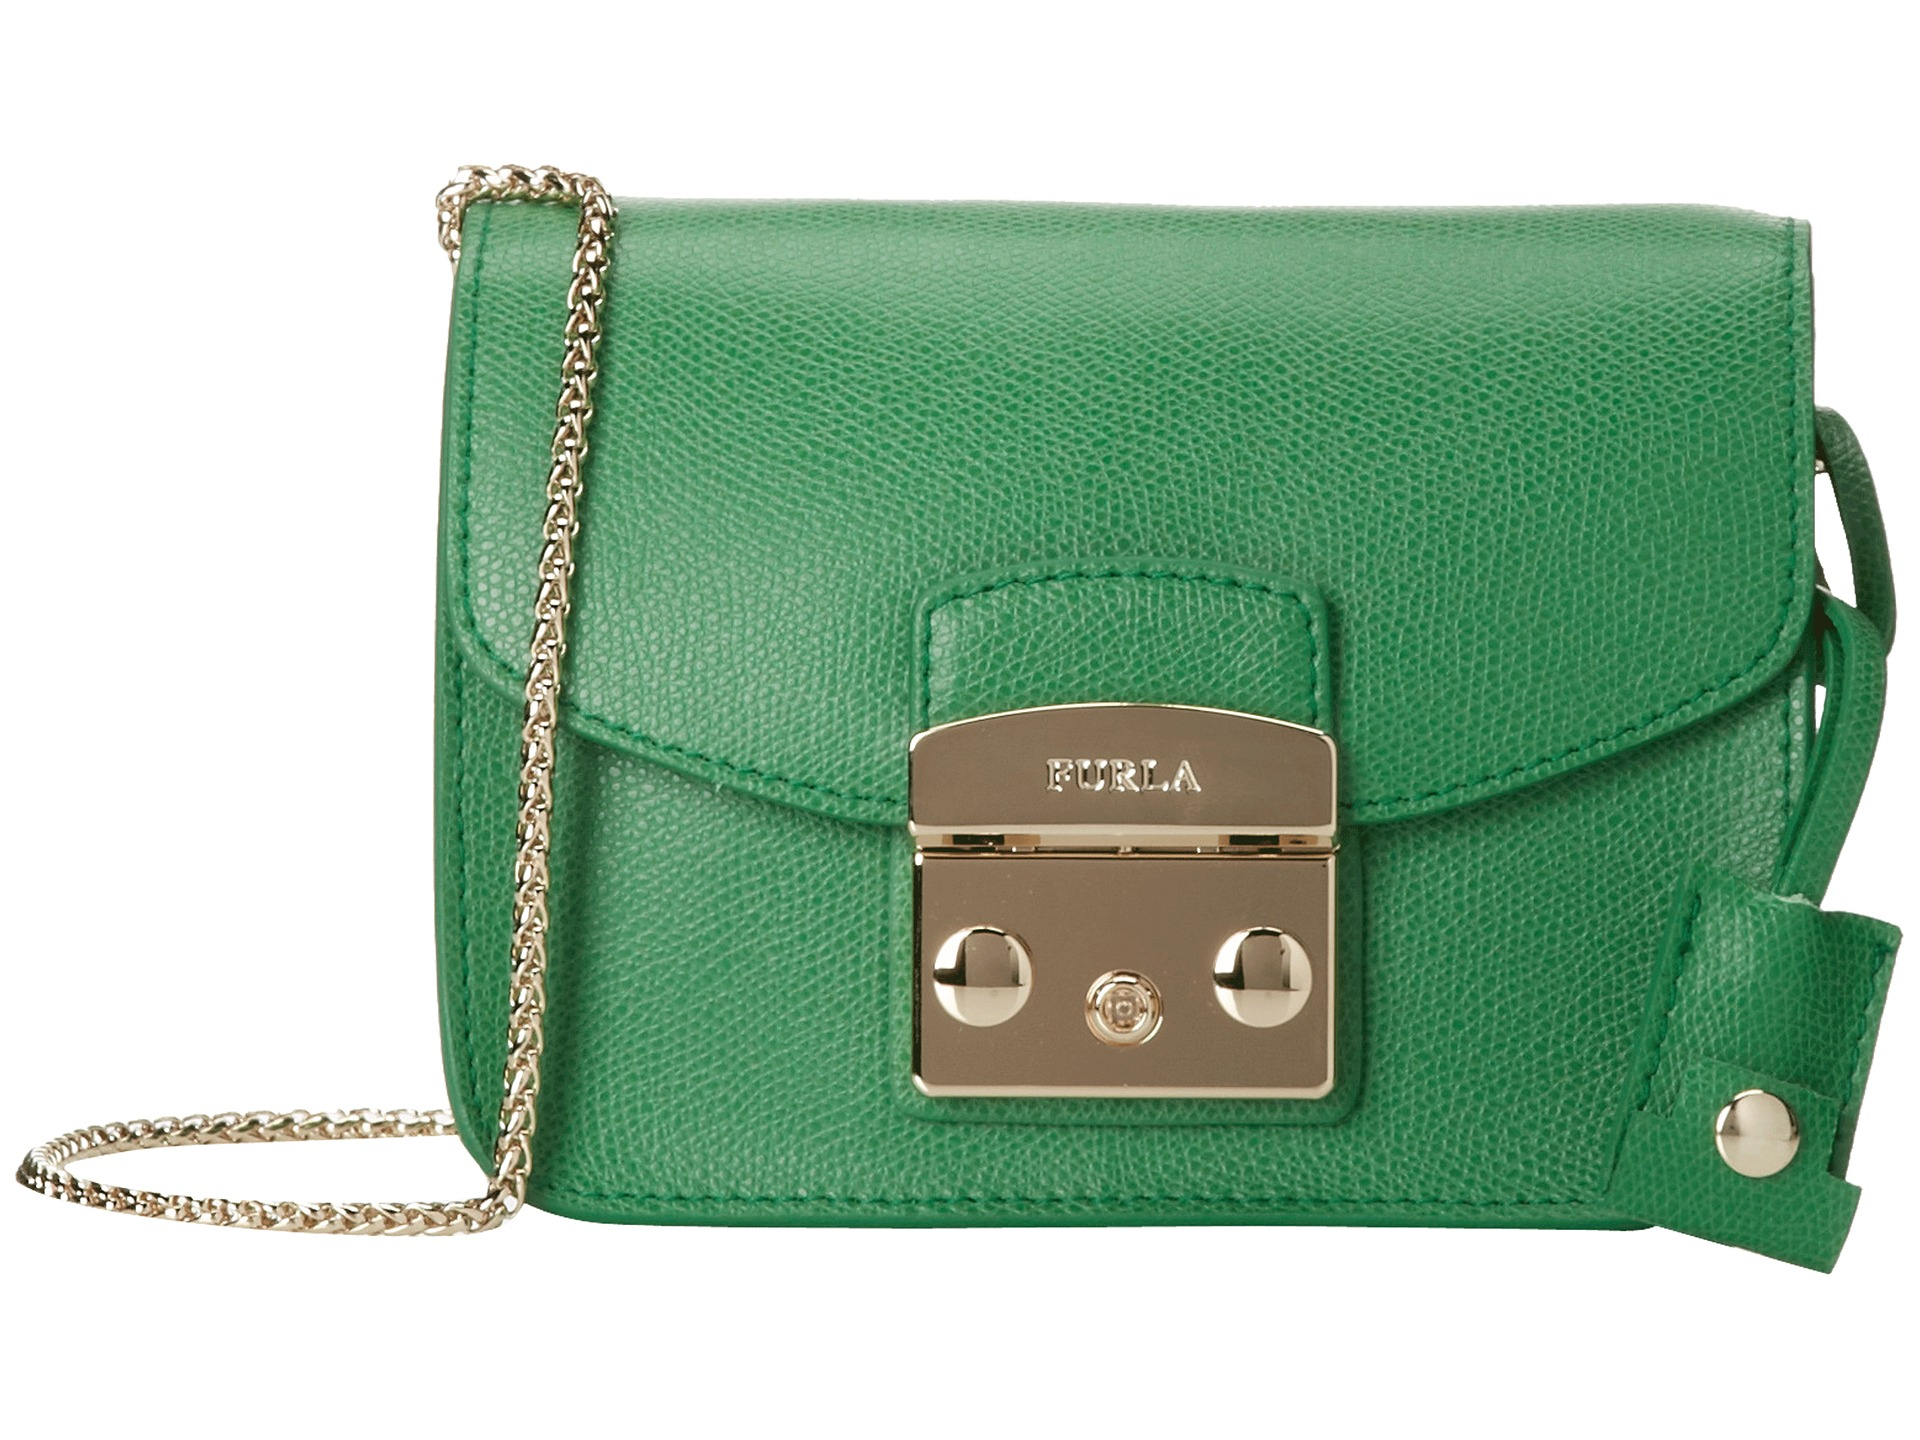 Discounts For Sale Free Shipping Shopping Online mini Metropolis crossbody bag - Green Furla Online Shopping Buy Cheap Get Authentic Countdown Package Cheap Online n60gCXQgte